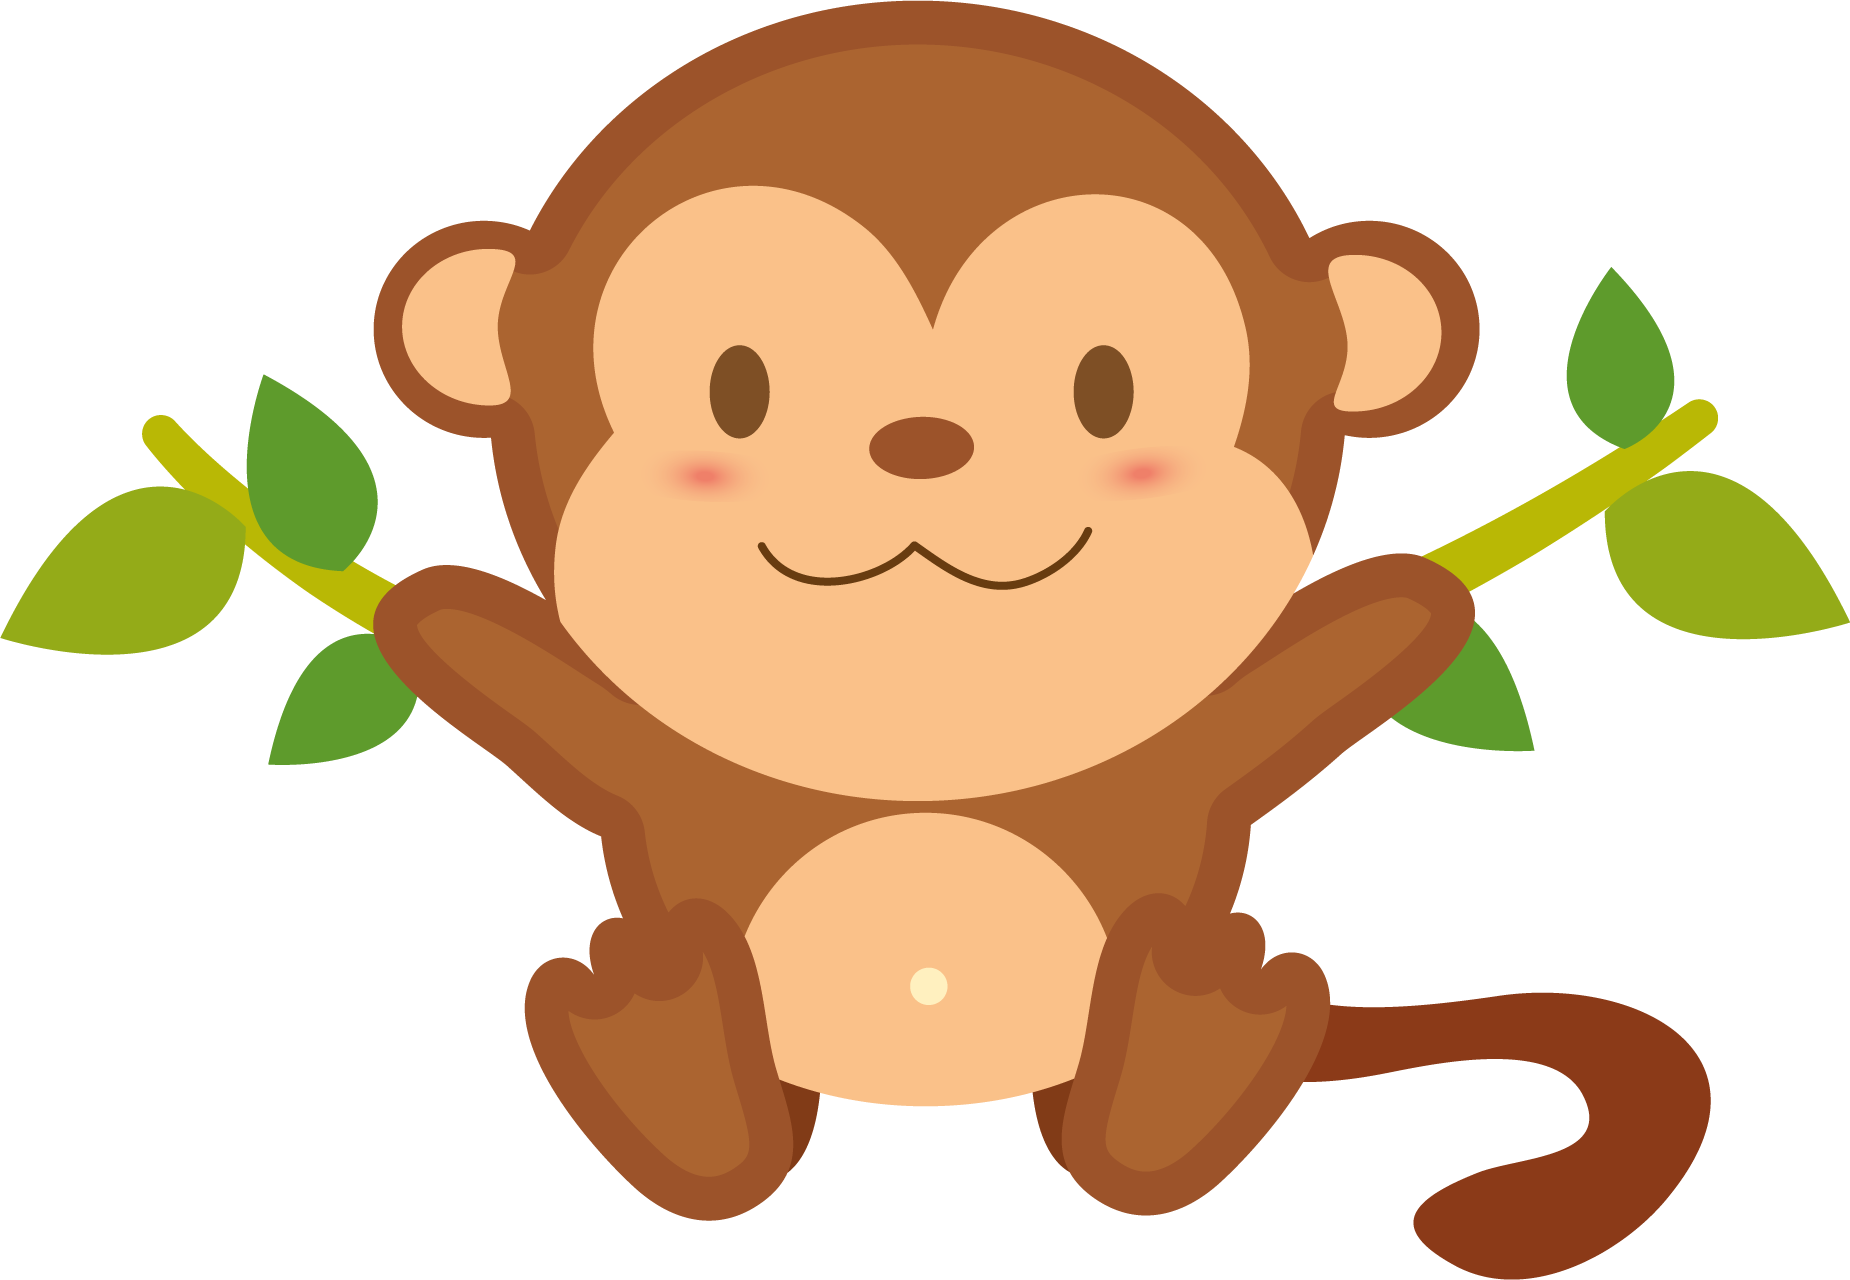 vector royalty free download Ape Clipart transparent background